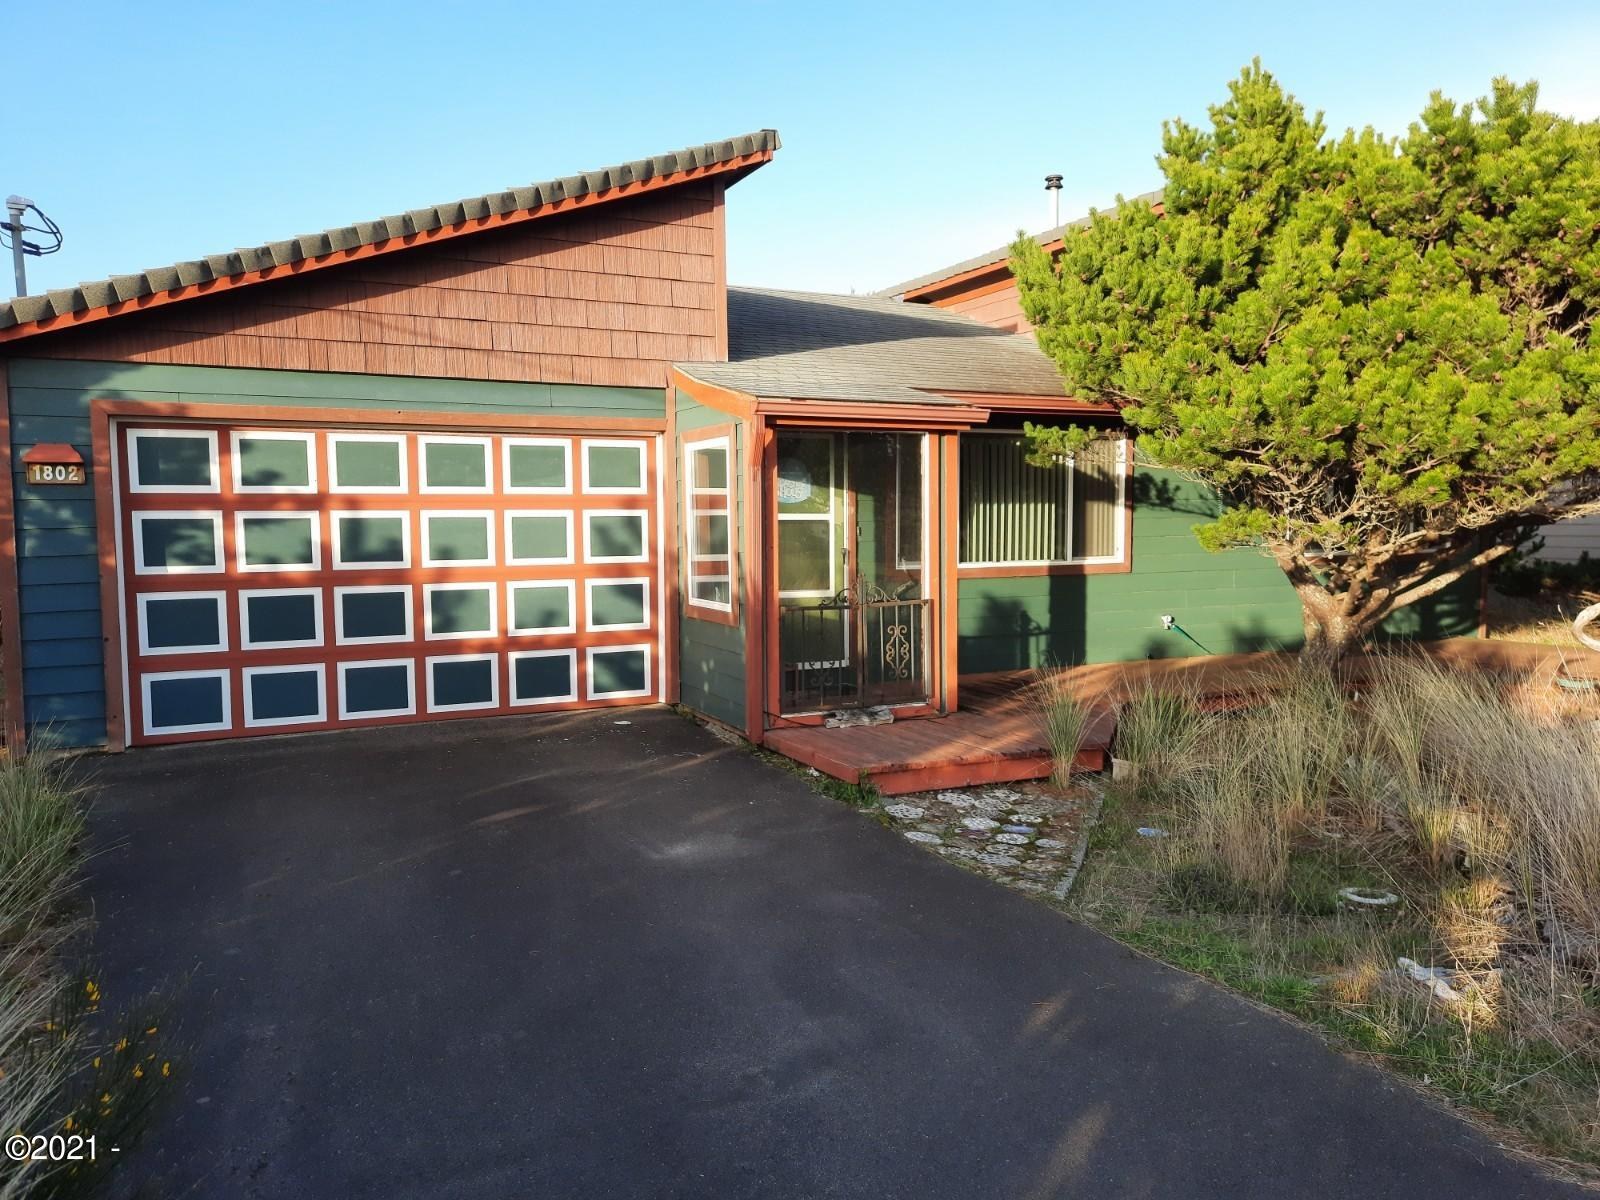 1802 NW Dolphin Ln, Waldport, OR 97394 - 20210301_170713